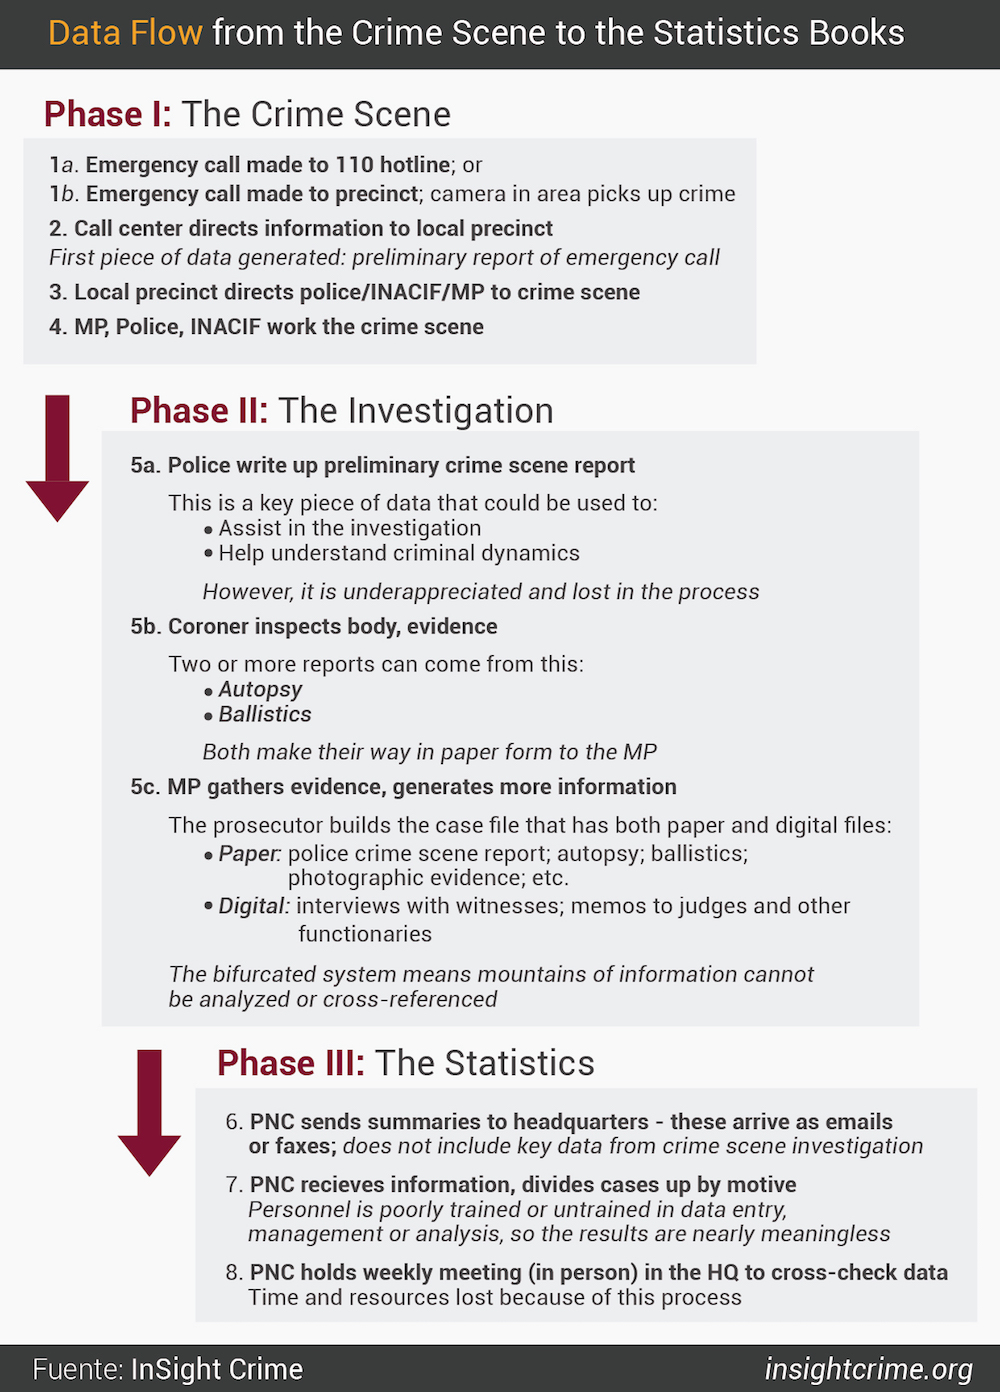 Figure-9-Data-Flow-from-the-Crime-Scene-to-the-Statistics-Books-02